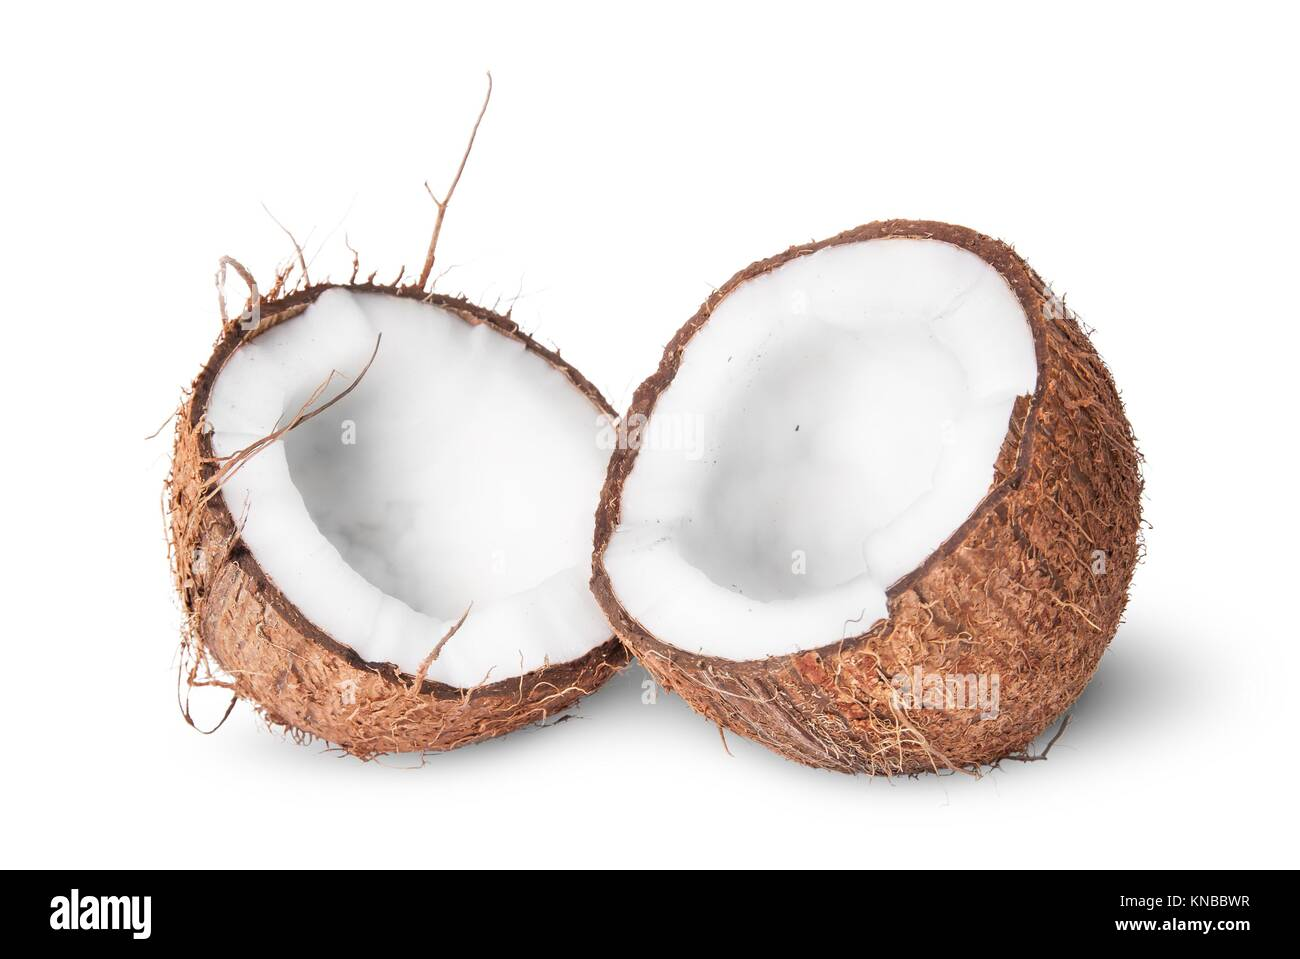 Two halves of coconut isolated on white background. - Stock Image